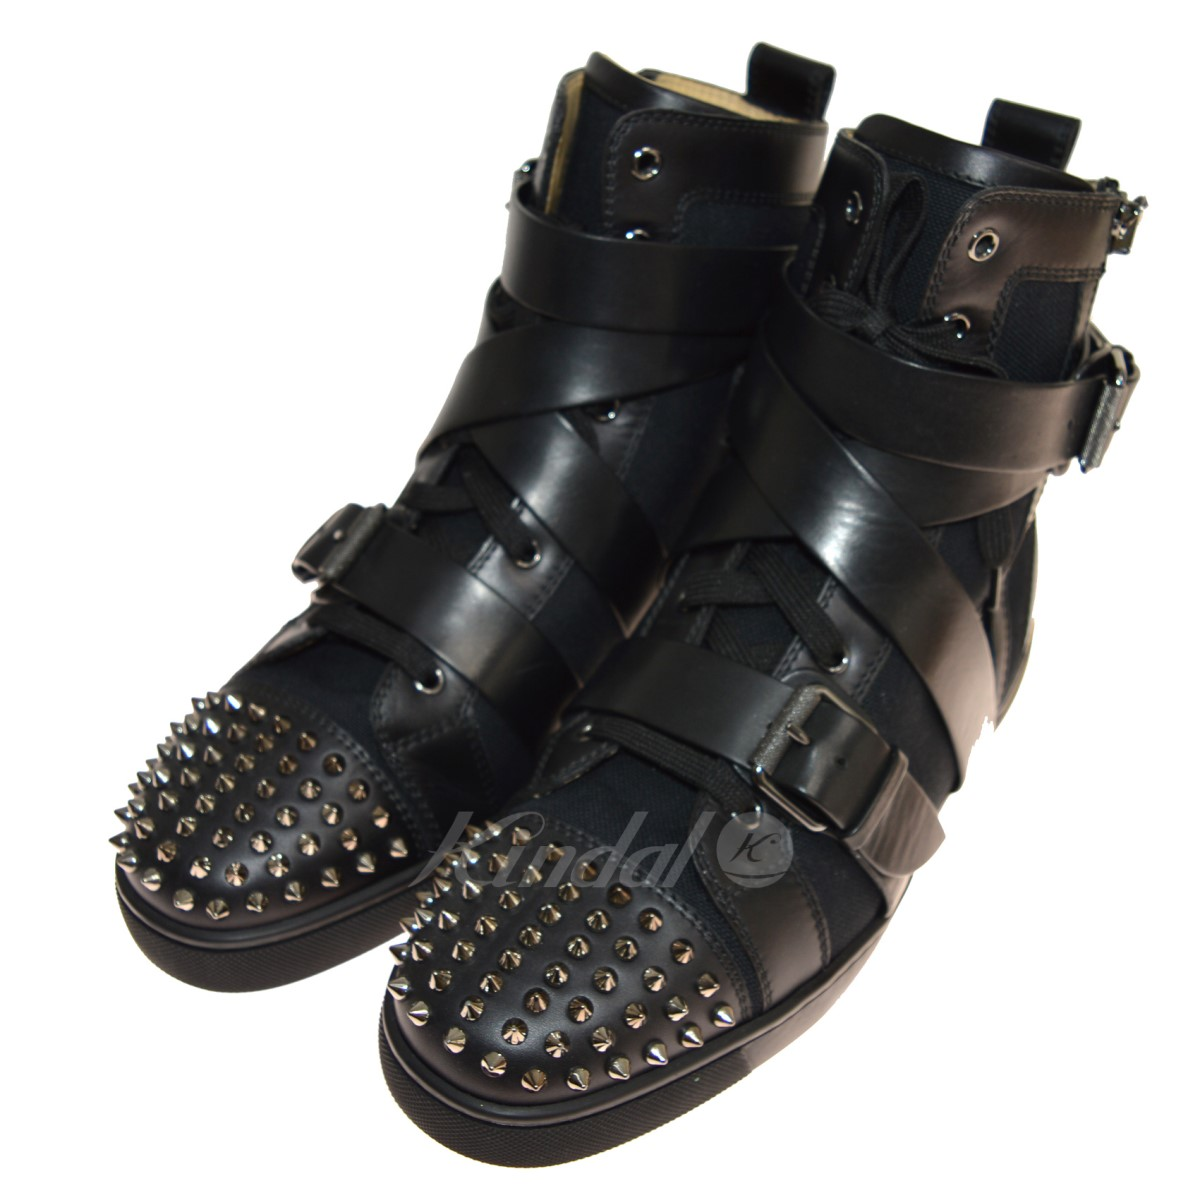 【中古】CHRISTIAN LOUBOUTIN Snap Shoot Spikes ハイカットスニーカー 【送料無料】 【148818】 【KIND1641】